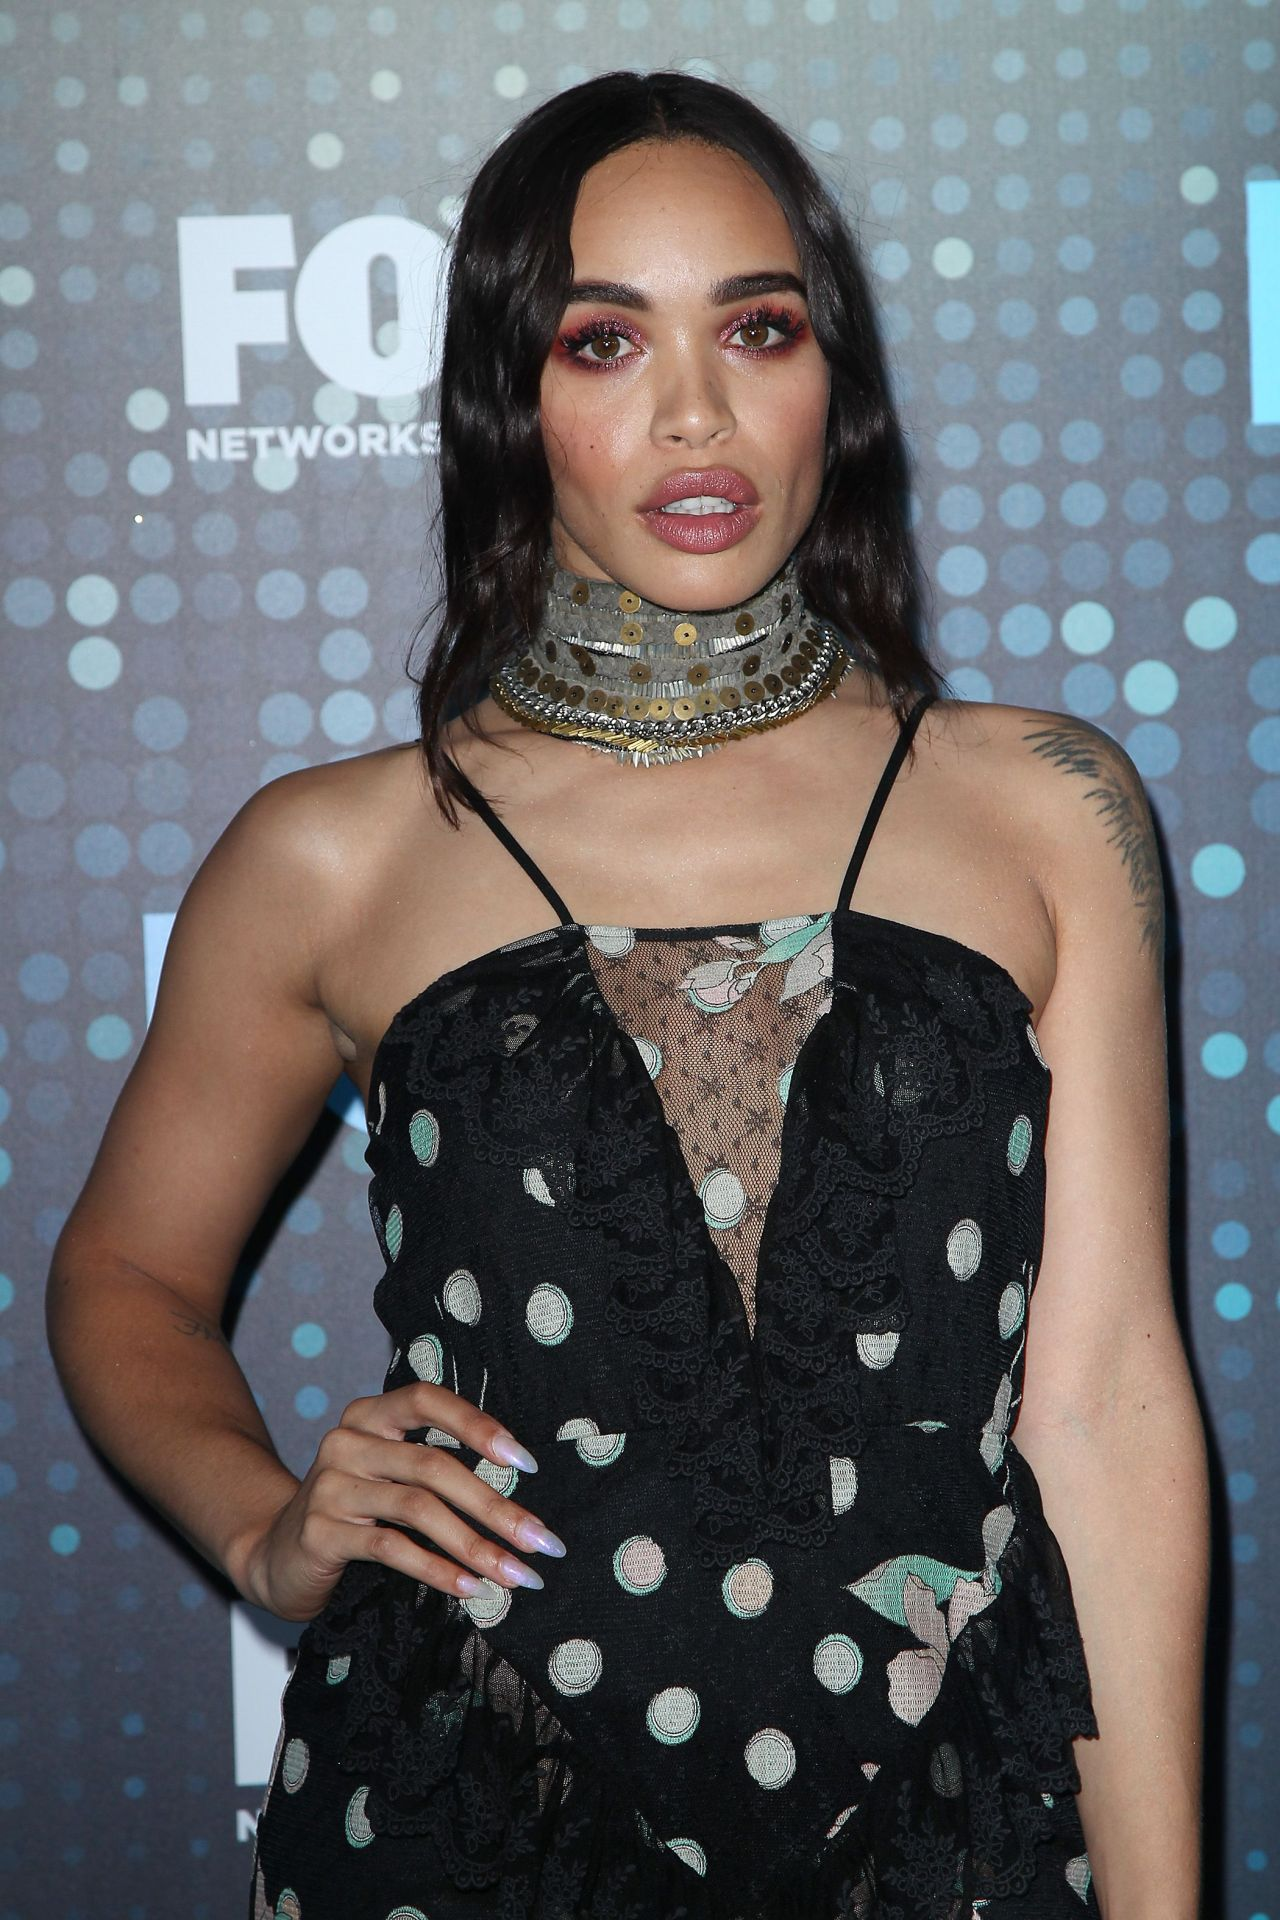 Cleopatra Coleman nudes (77 pictures) Hacked, 2015, cameltoe